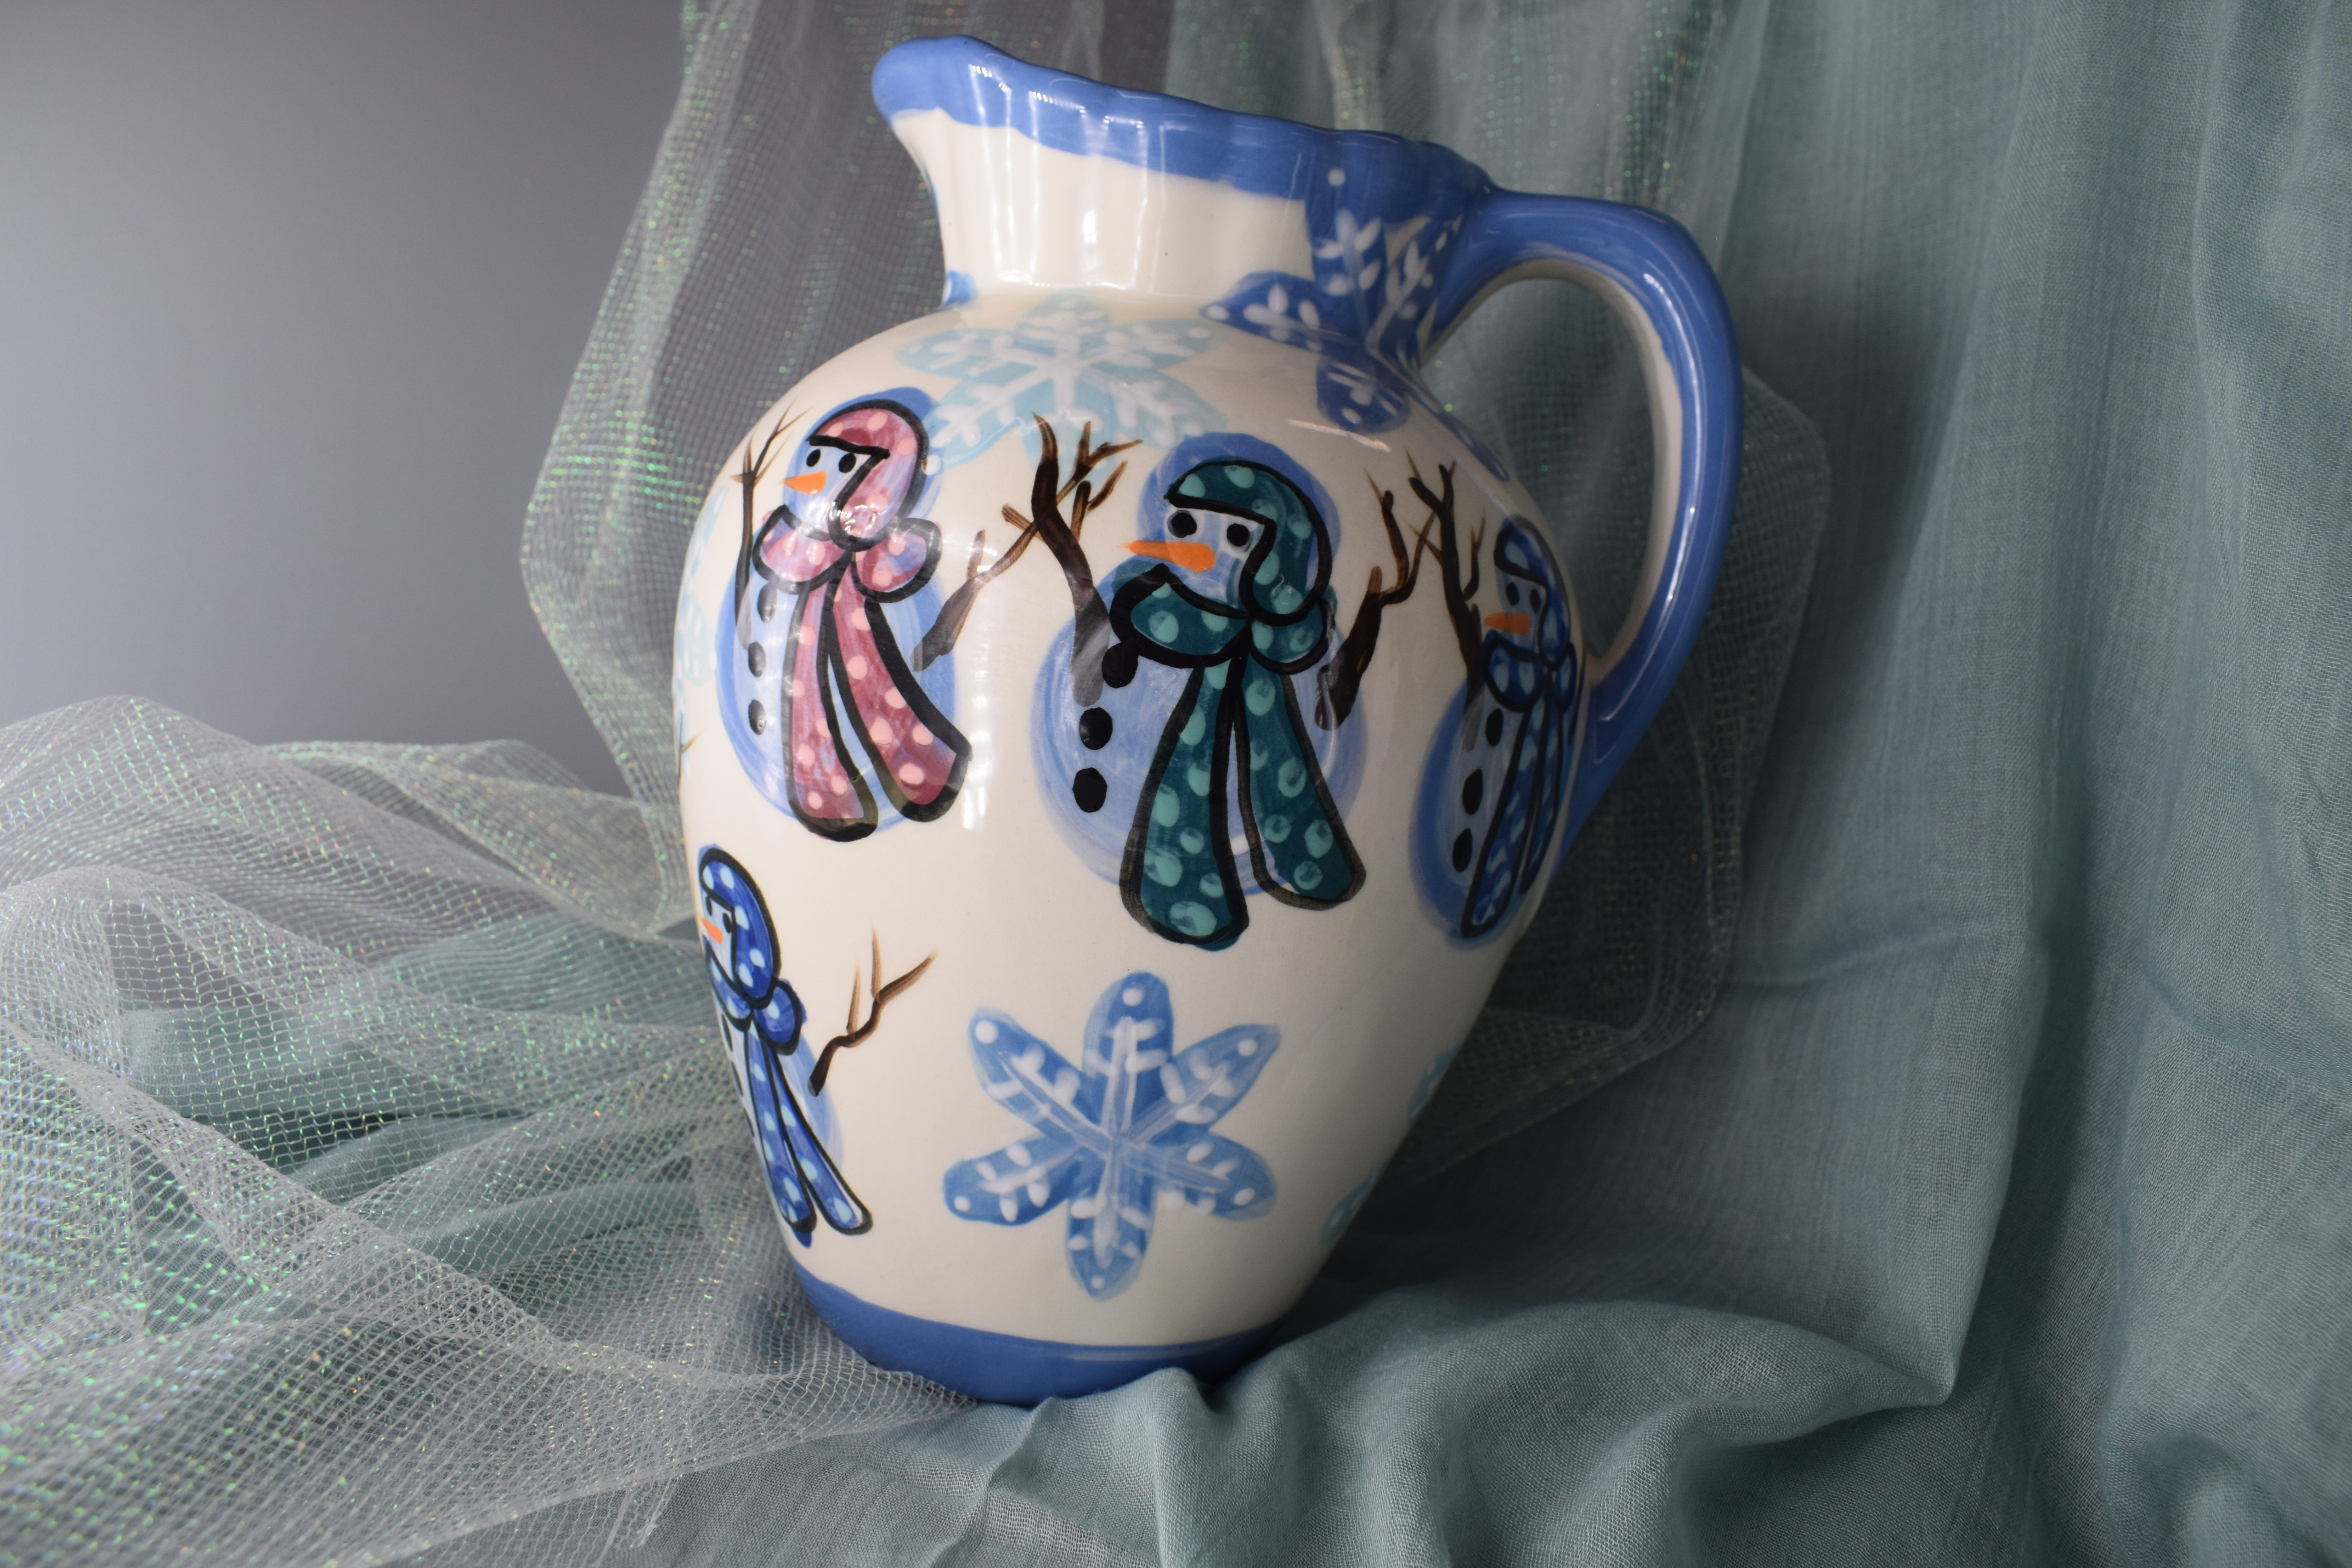 (LP03-SMSF) Large Pitcher- Snowman with Snowflakes